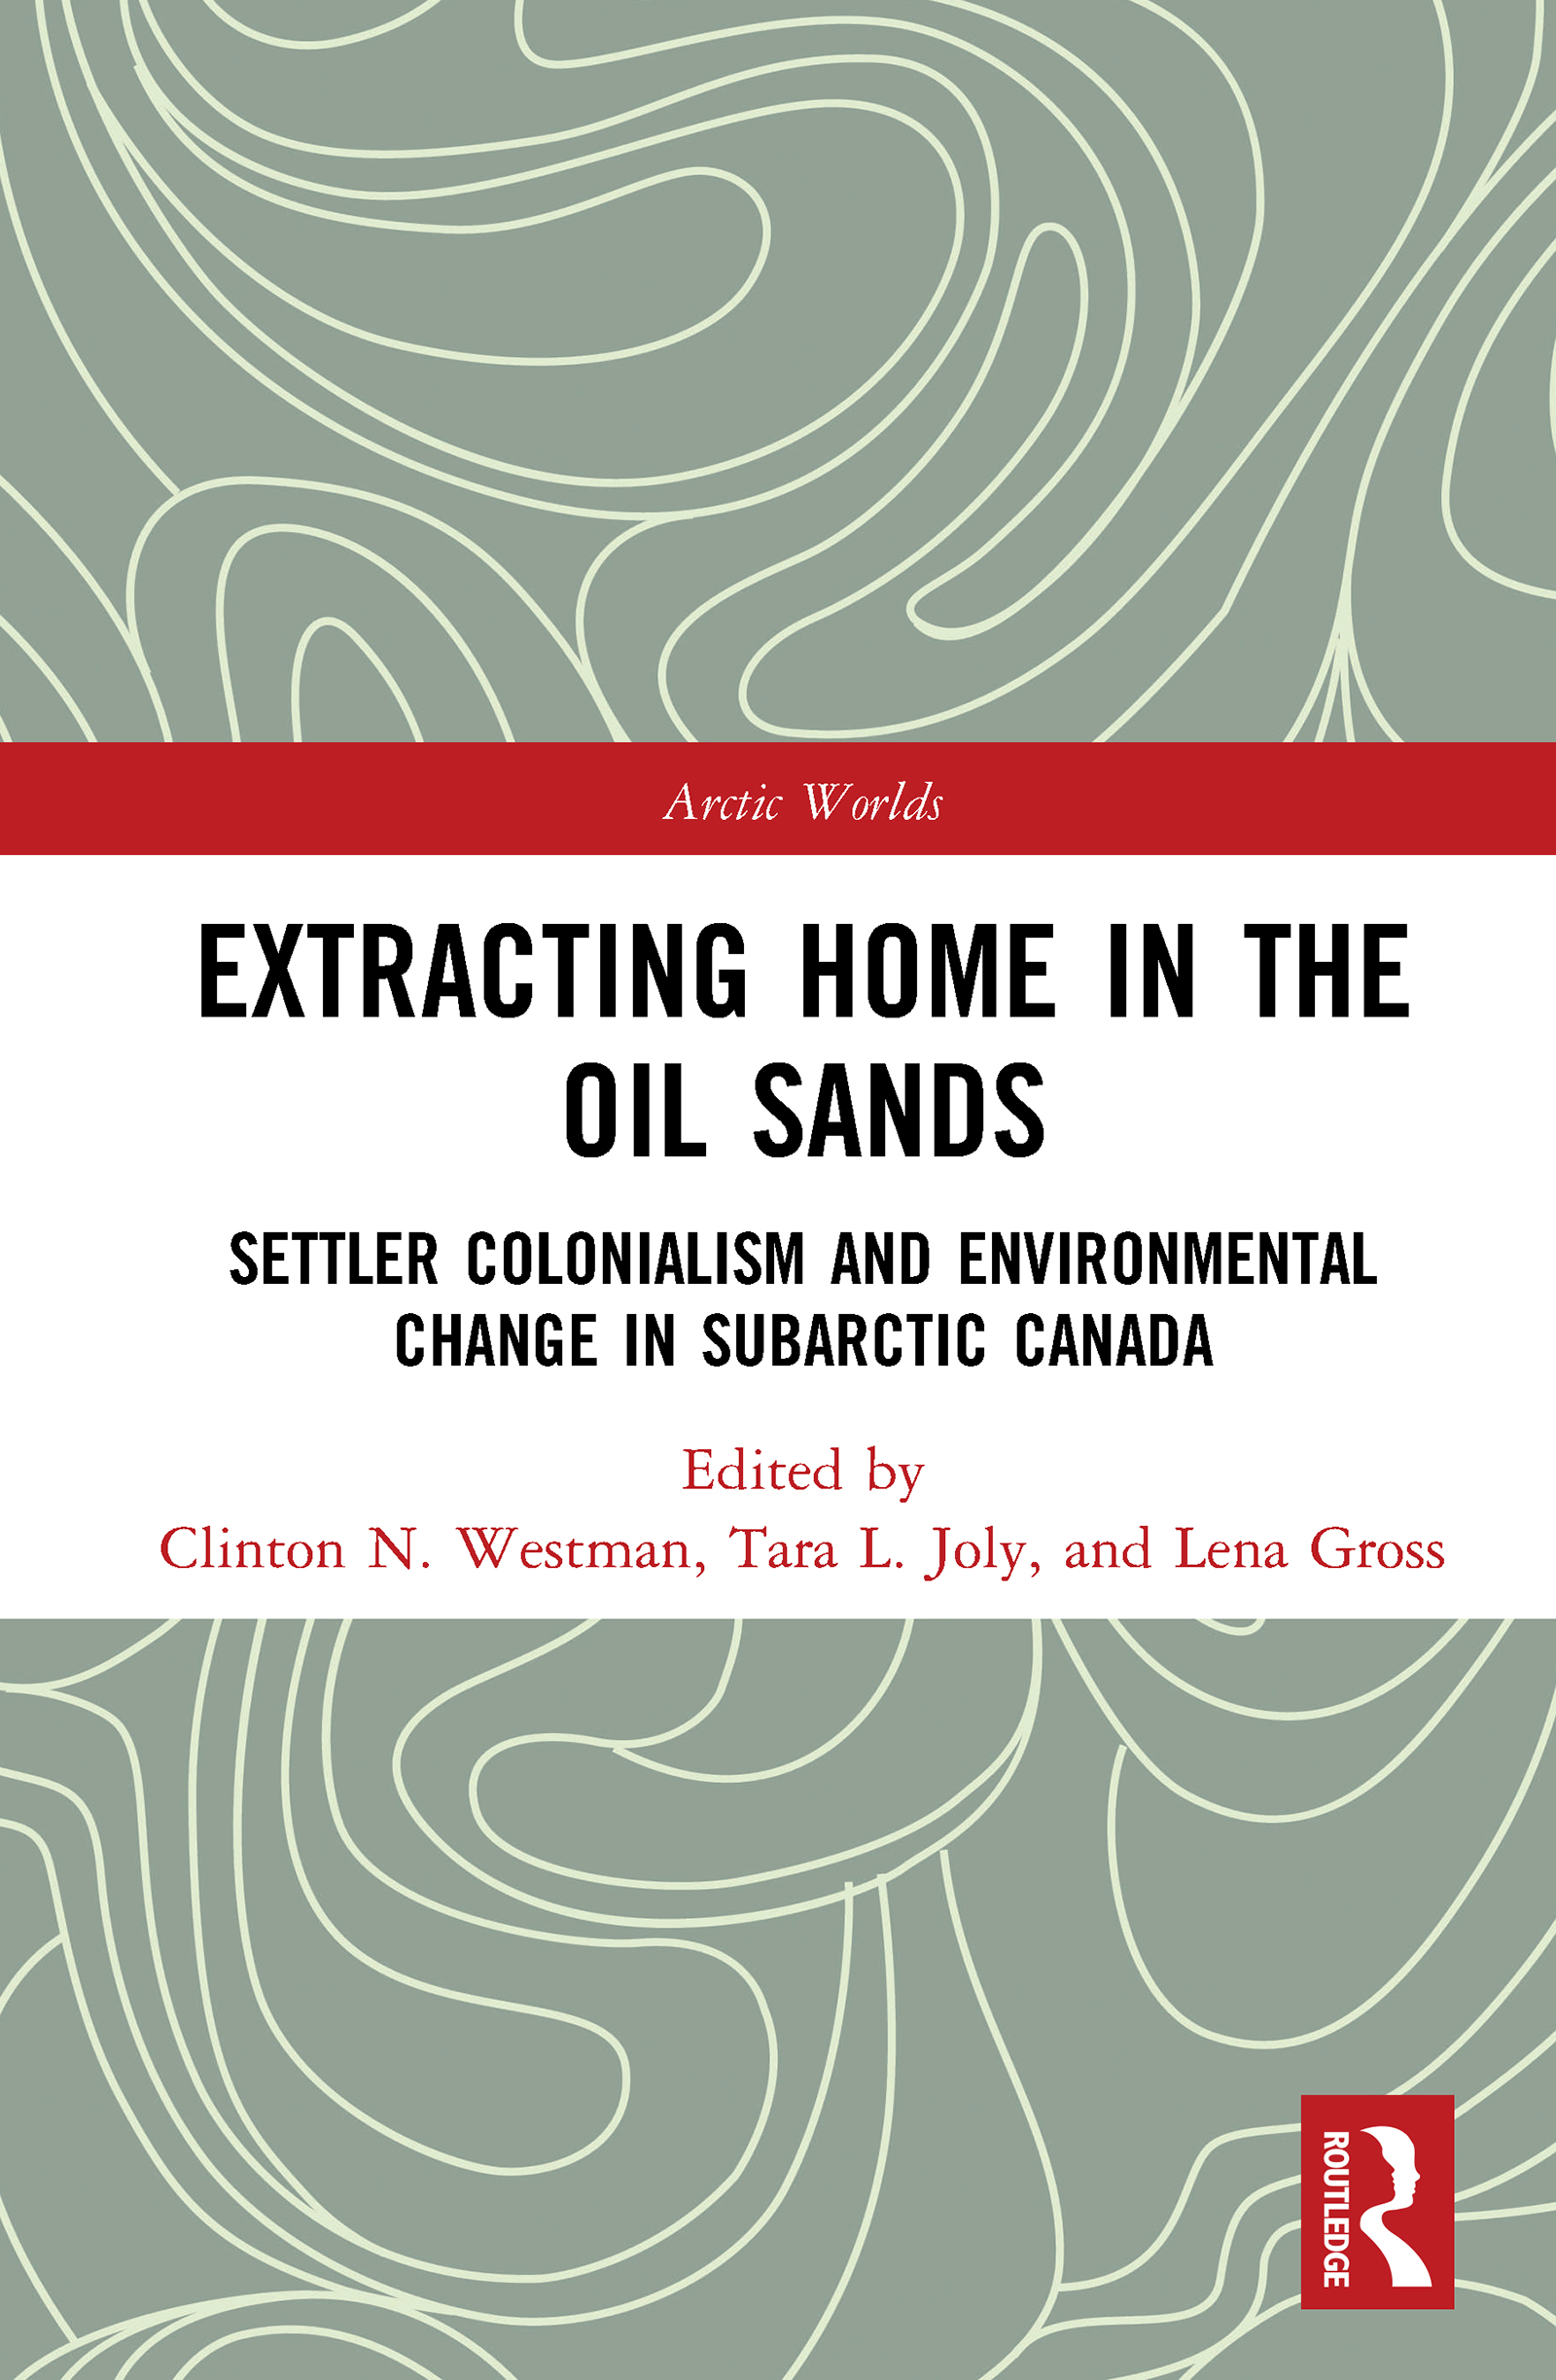 Extracting Home in the Oil Sands: Settler Colonialism and Environmental Change in Subarctic Canada book cover